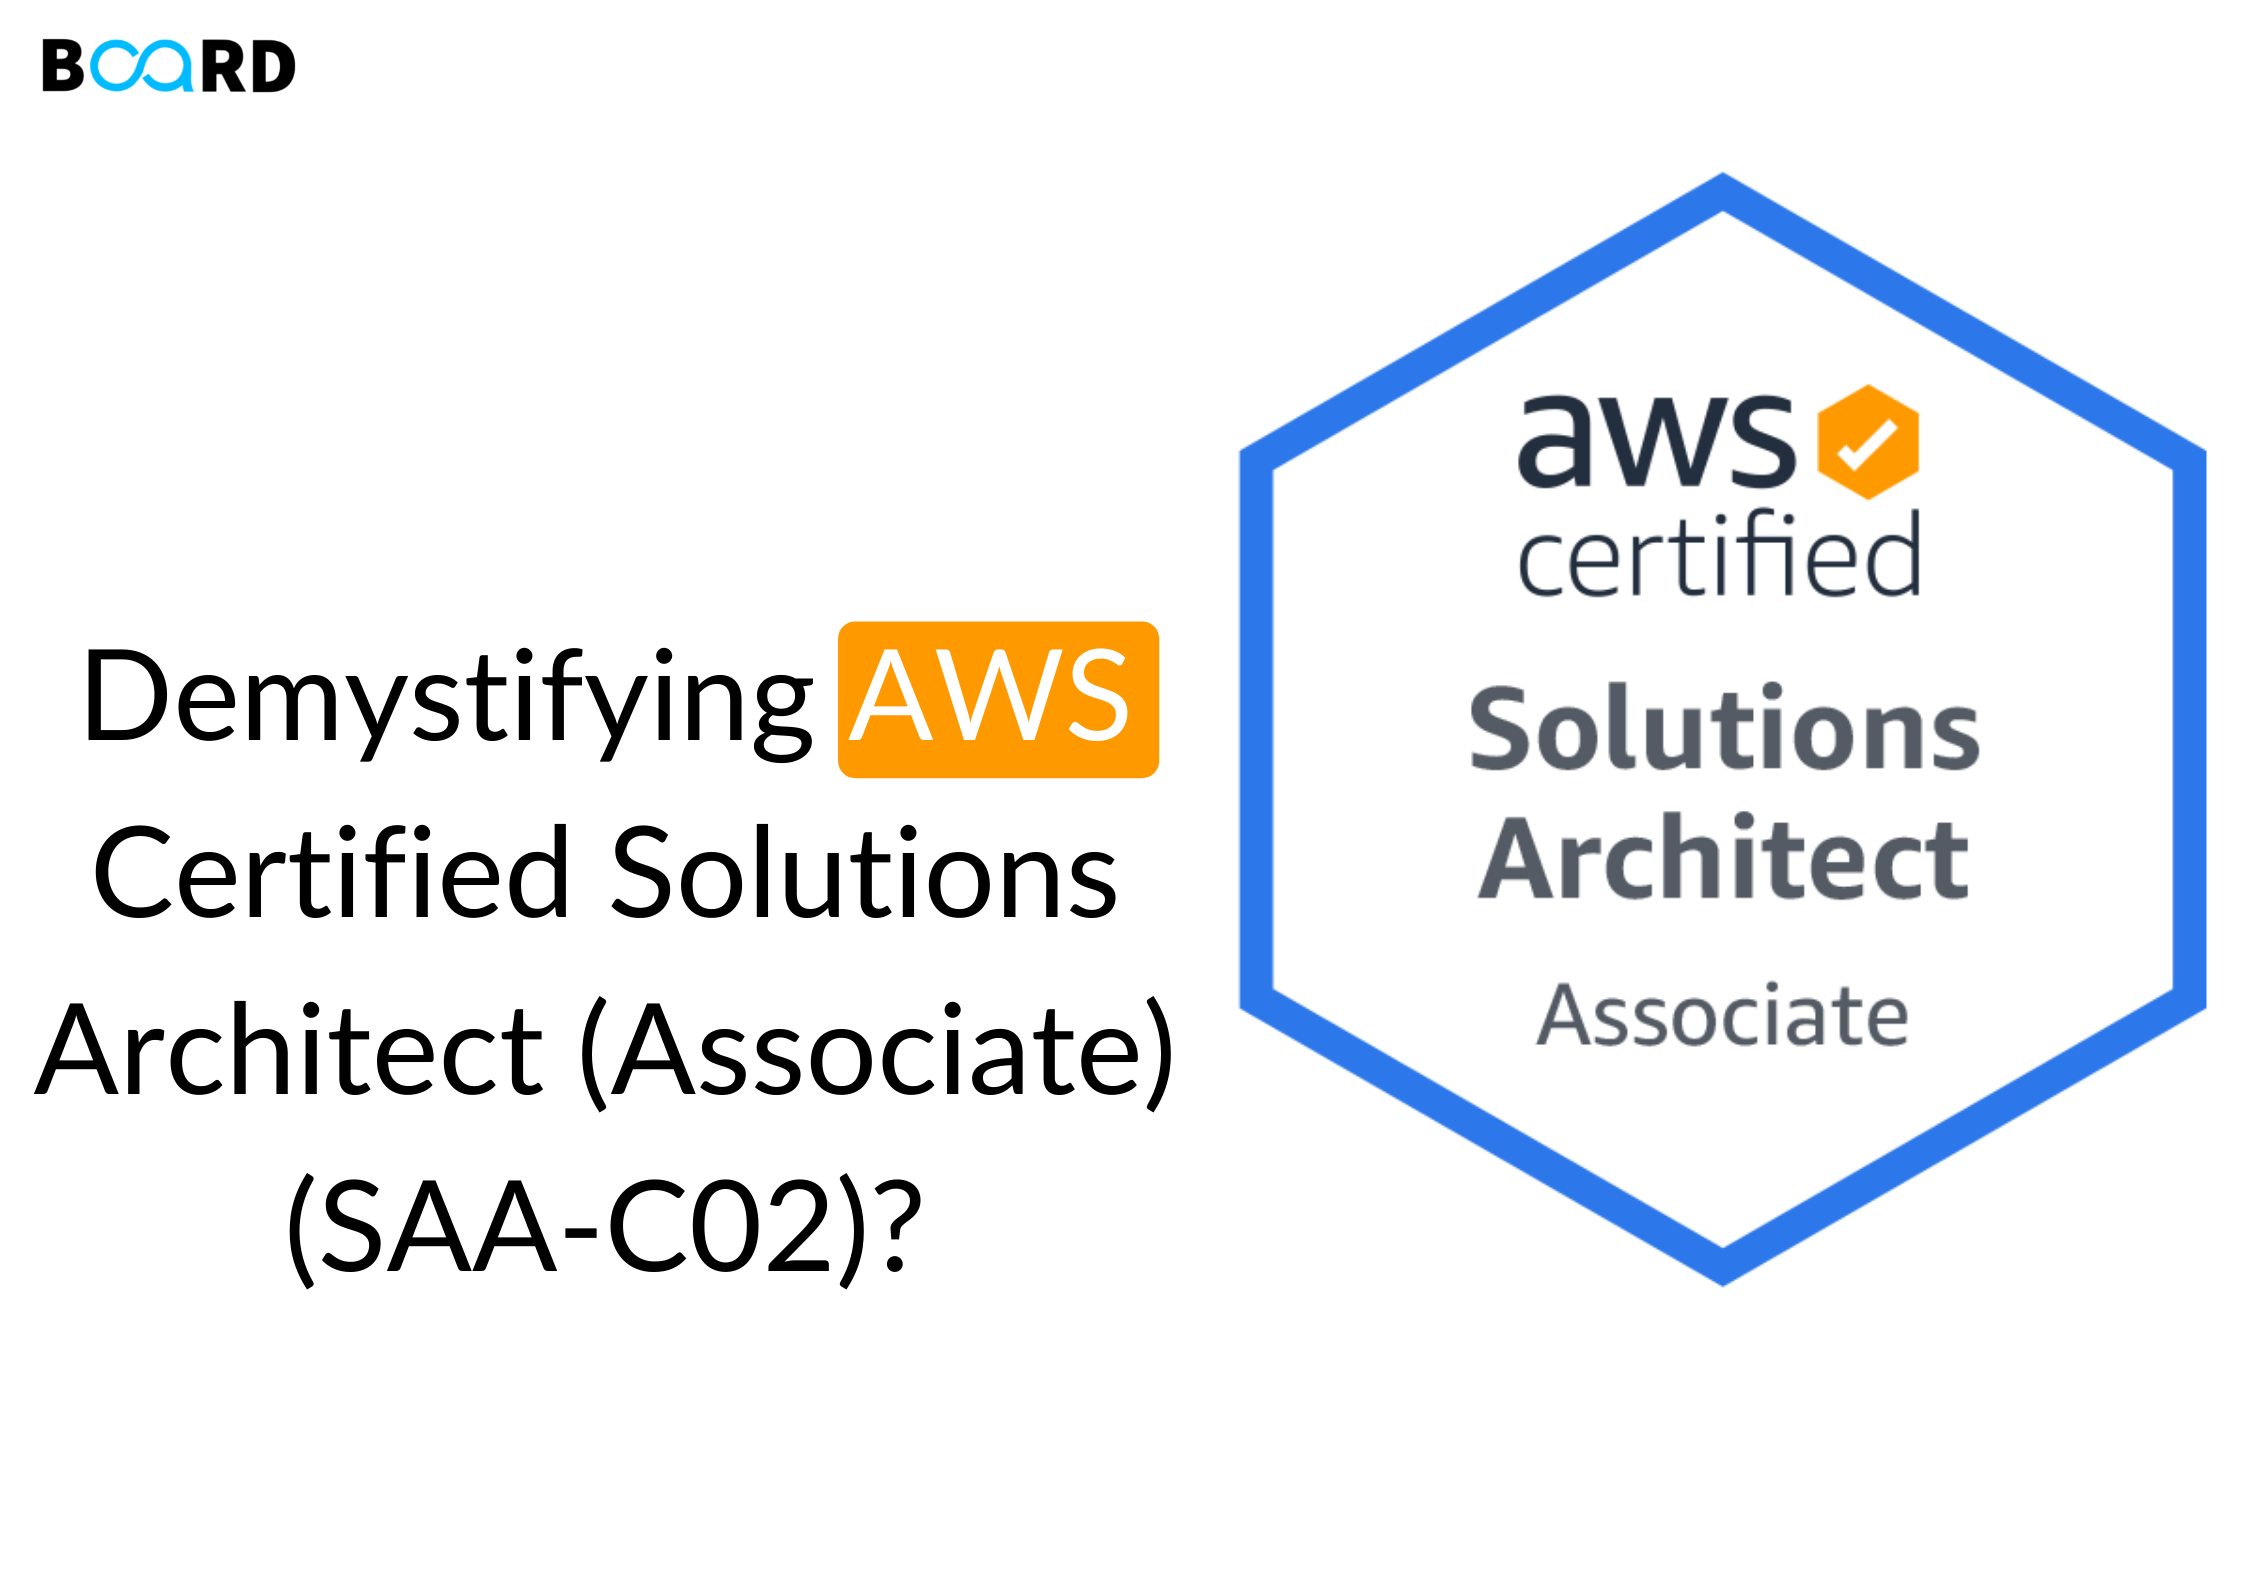 Demystifying AWS Certified Solutions Architect (Associate) (SAA-C02)?